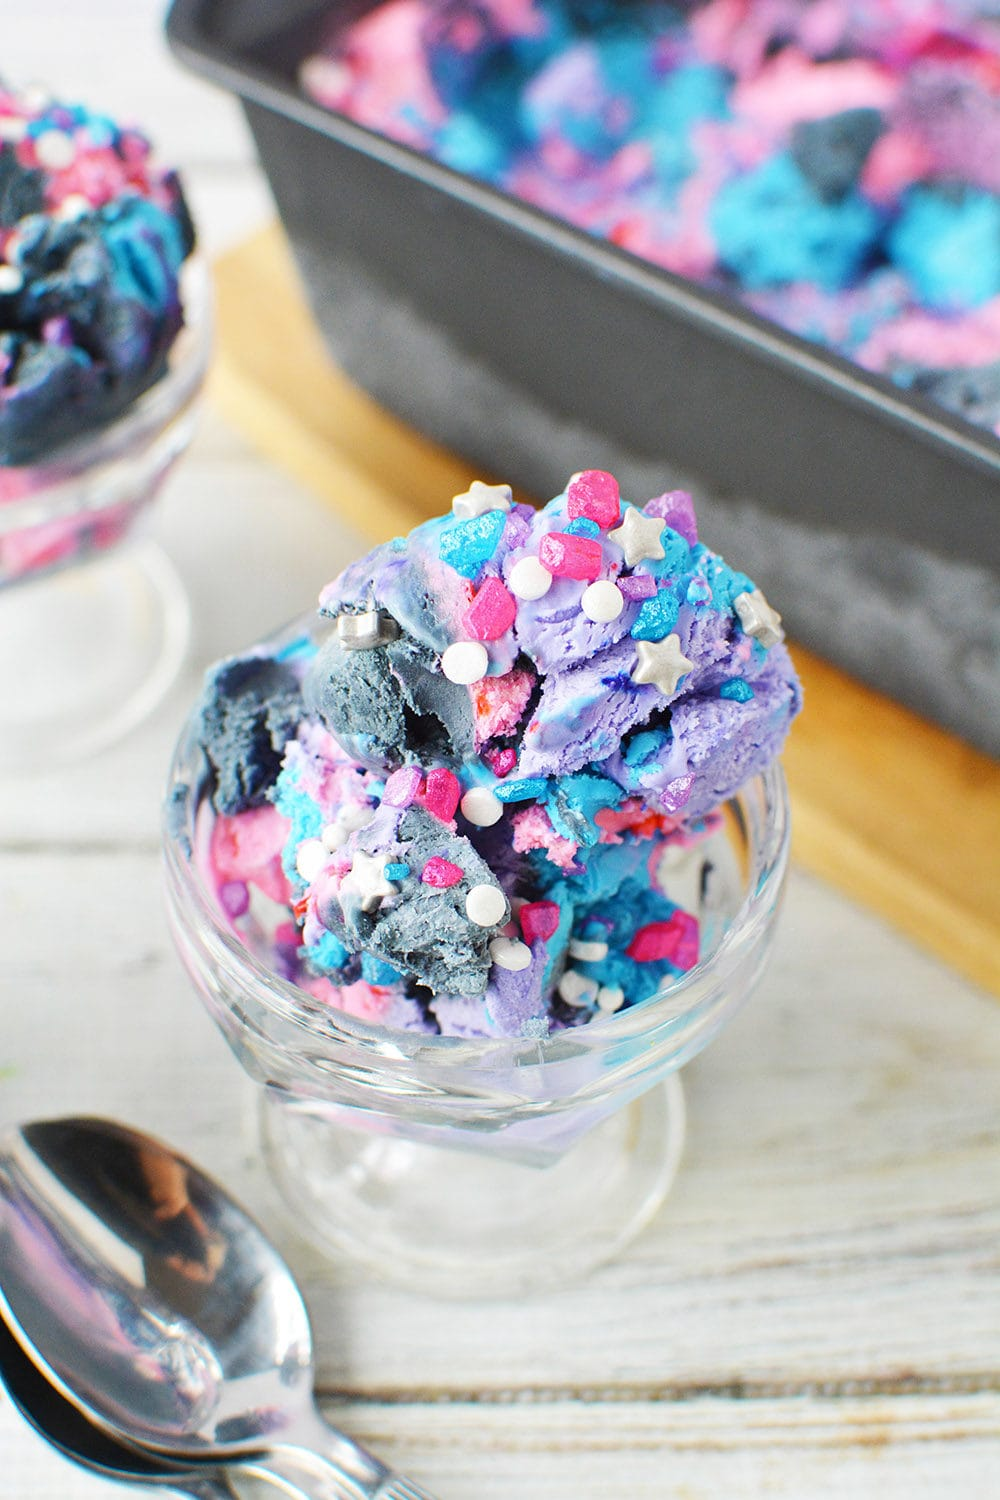 Scoop of galaxy ice cream in a sundae dish.